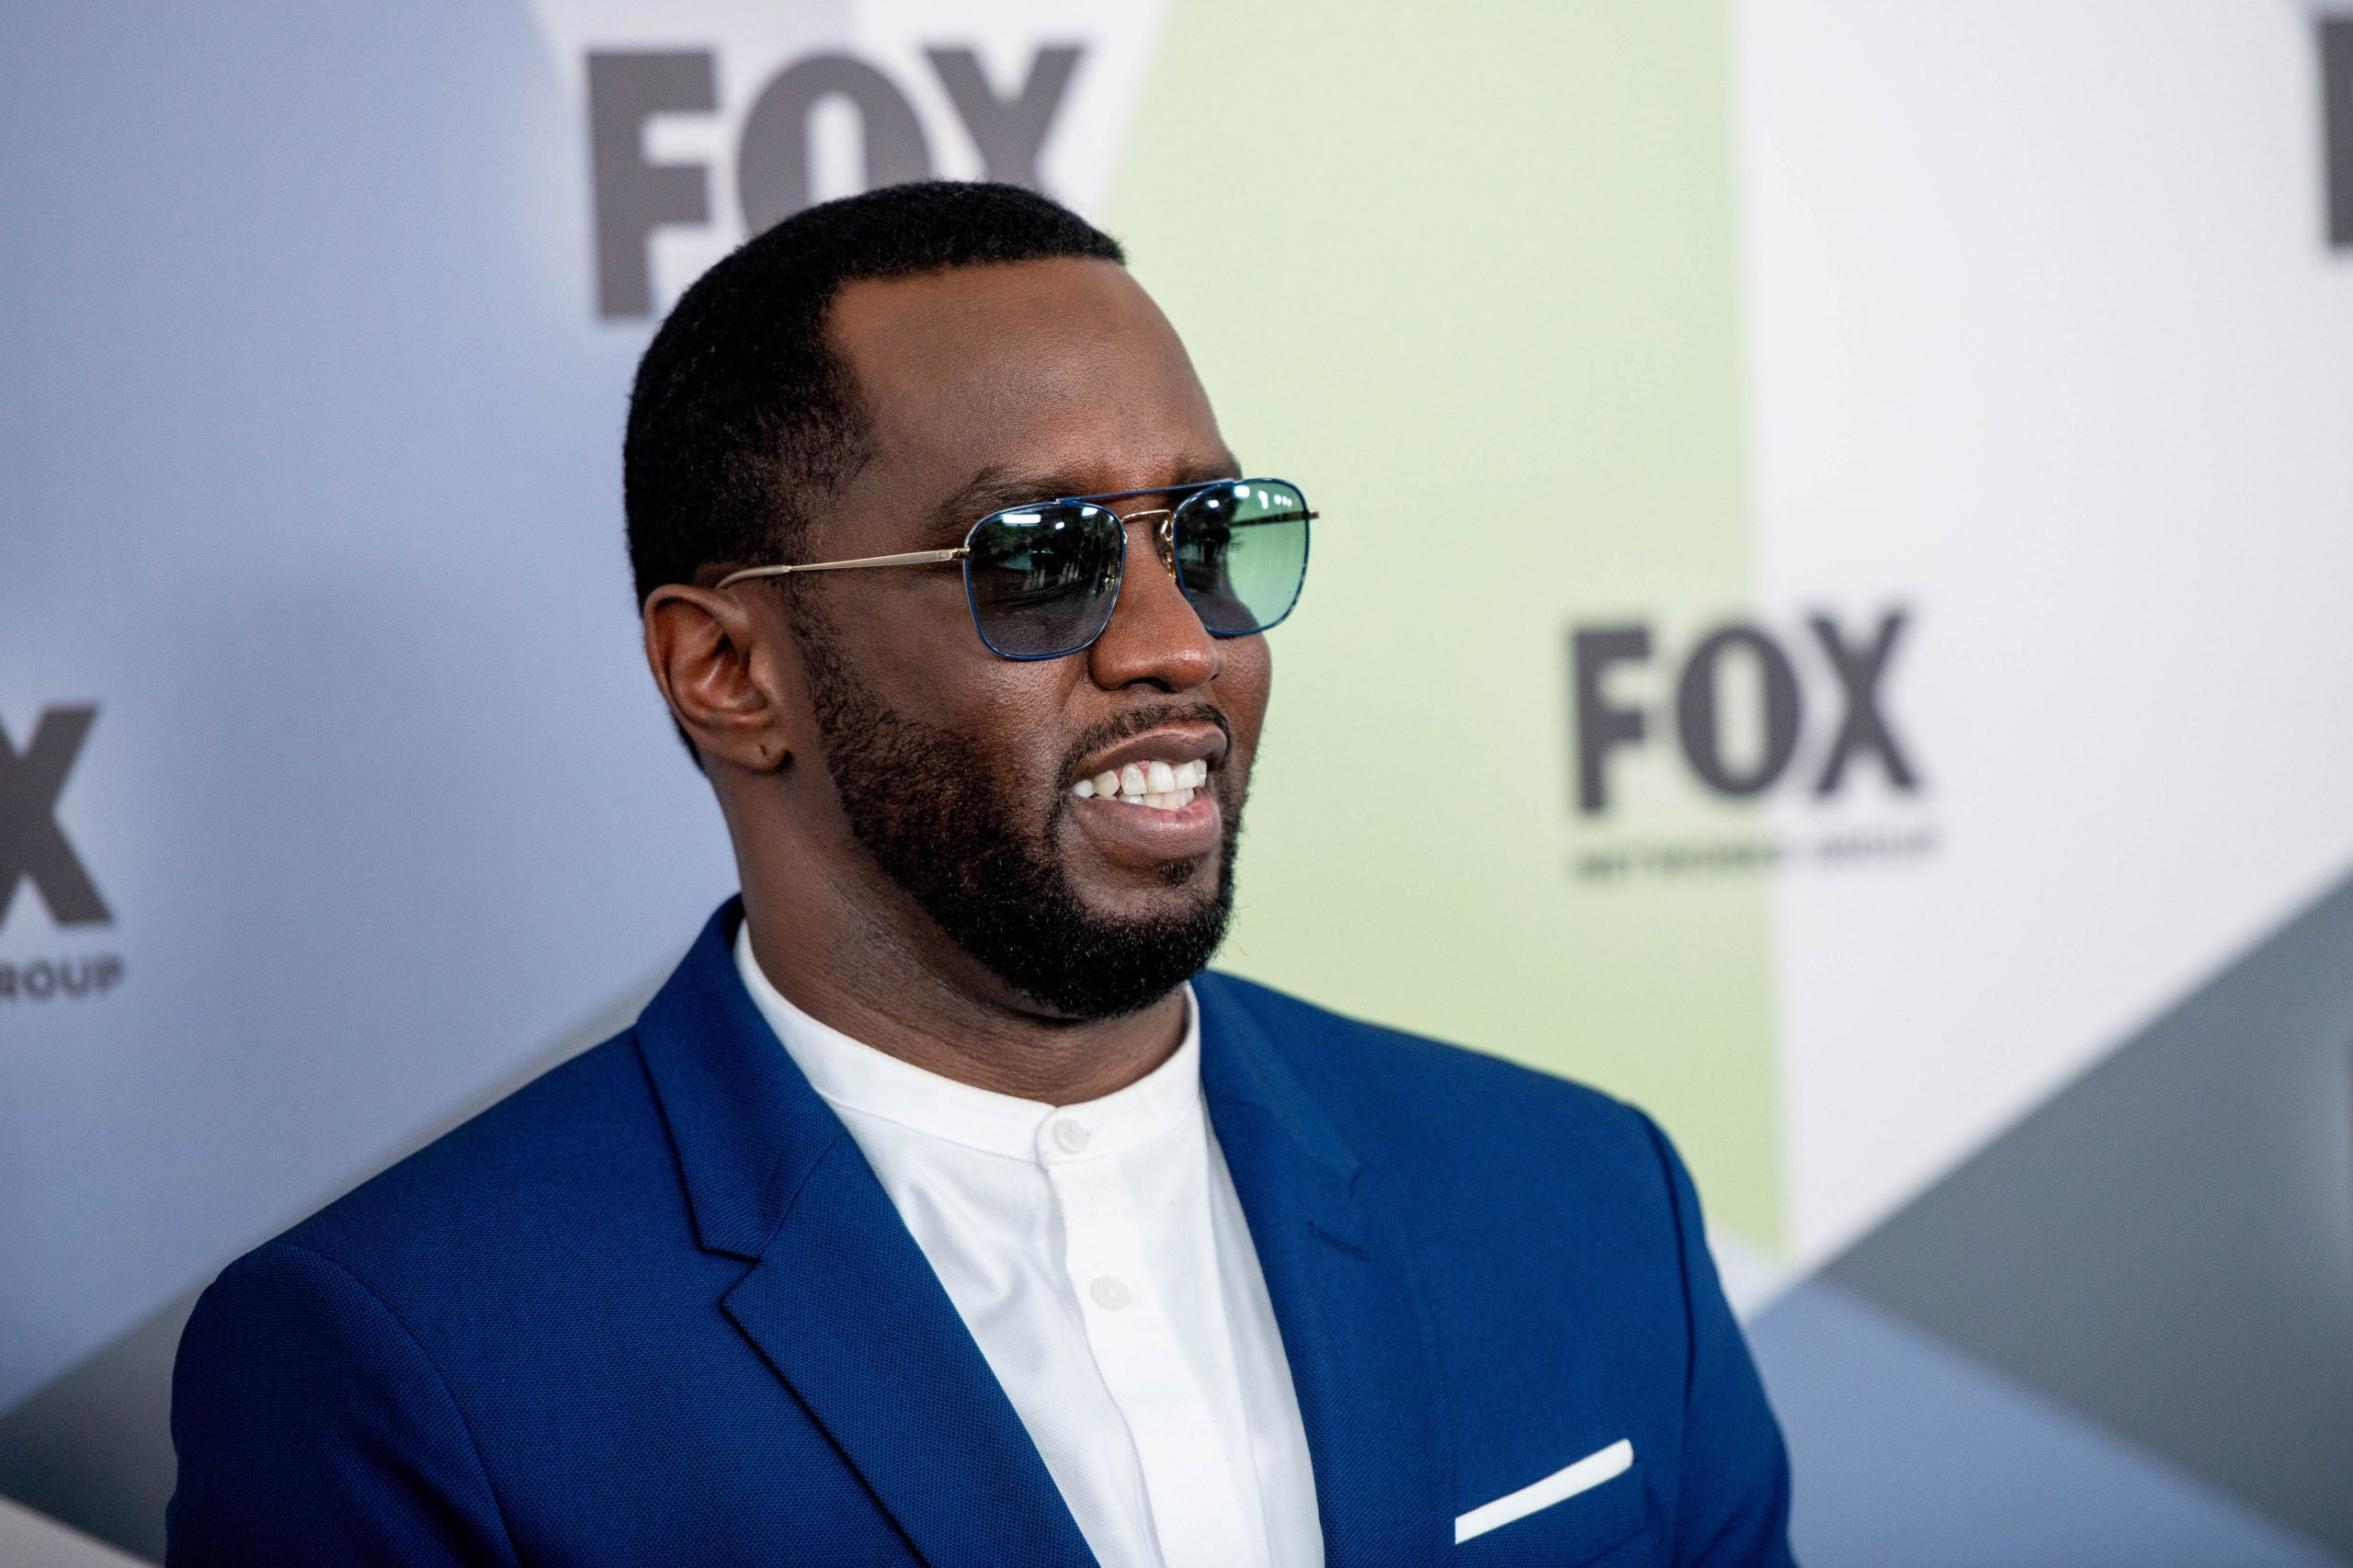 Diddy demands change from corporate America: 'We are prepared tou00a0weaponize our dollars'